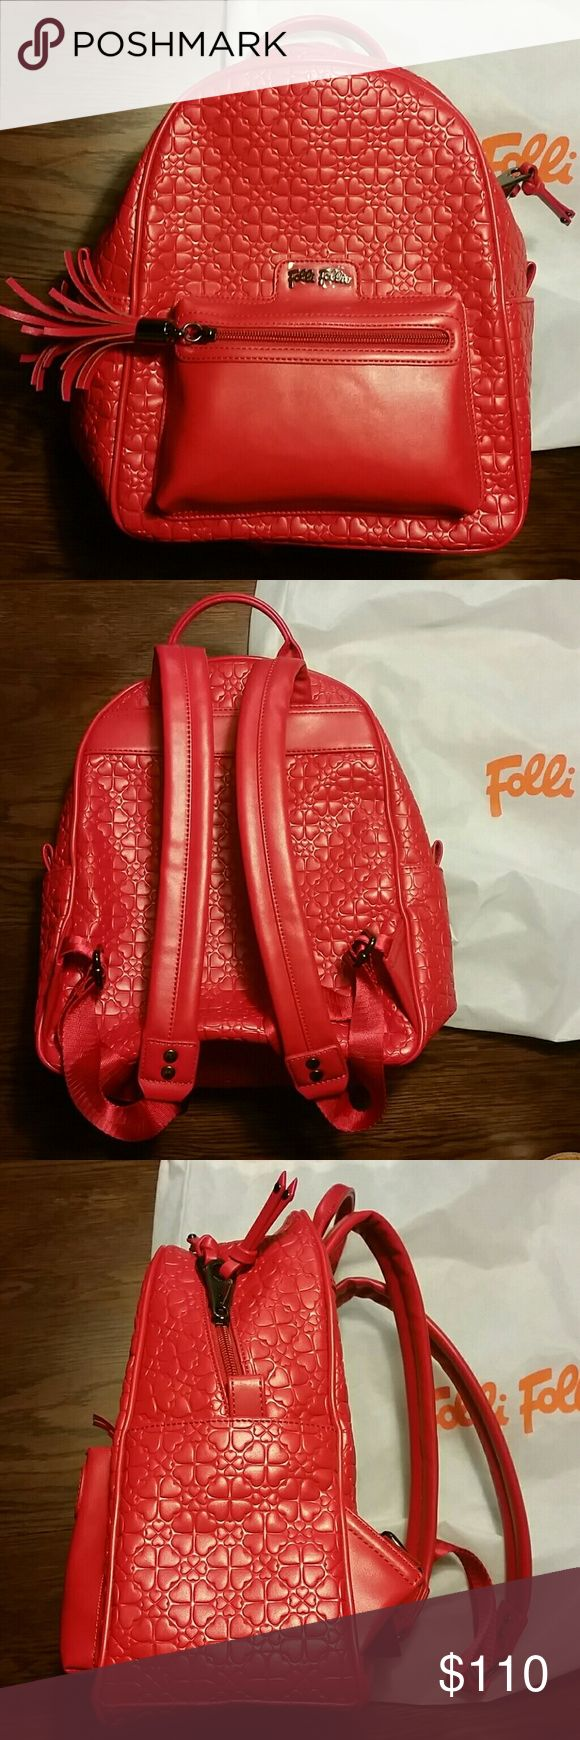 Folli Follie Heart4Heart Sweetheart Backpack BRAND NEW Received as a gift and never used- stayed in dust bag. Comes with authencity certificate card and dust bag.  Make me an offer! folli follie Bags Backpacks